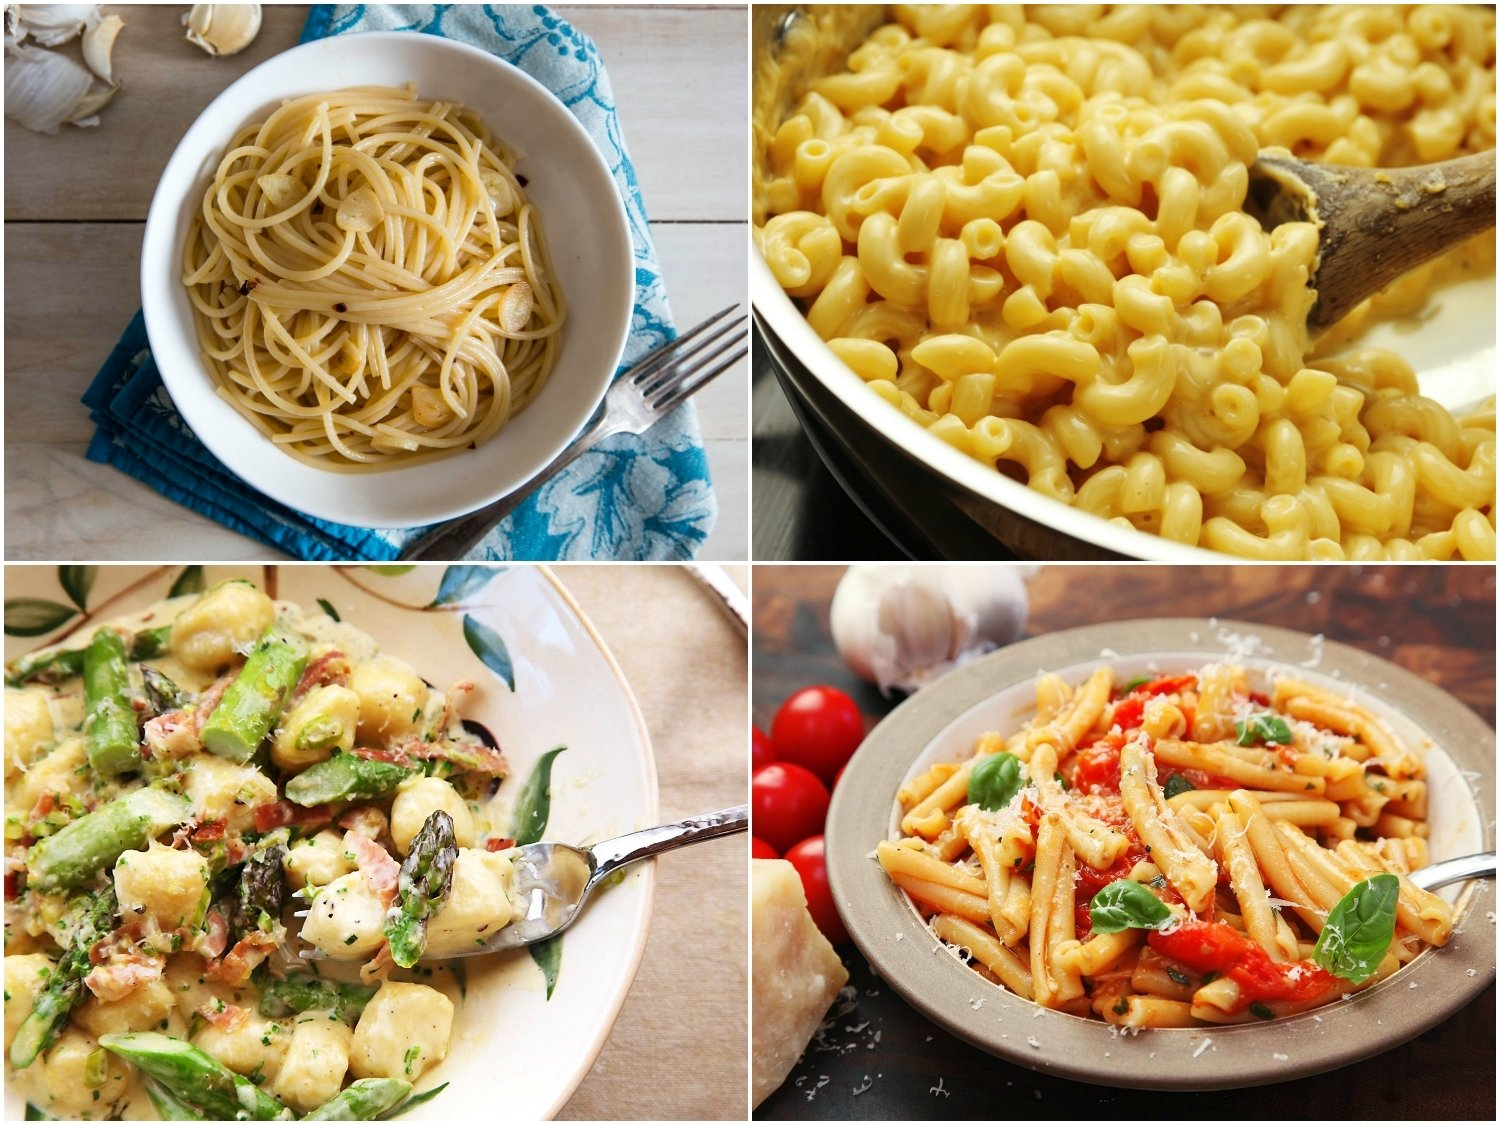 10 Beautiful Quick And Easy Meal Ideas 25 quick pasta recipes for simple weeknight meals serious eats 2020